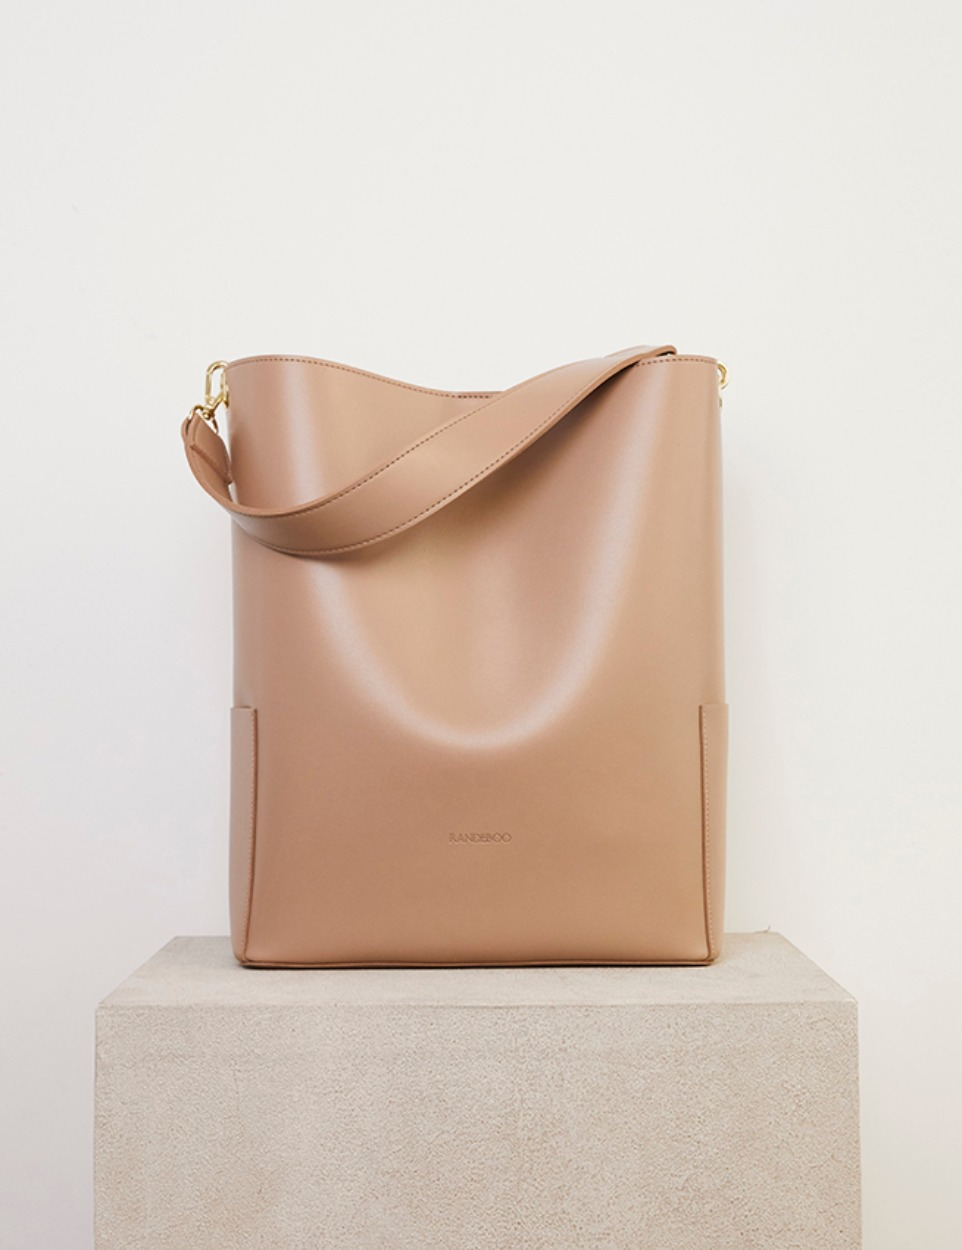 RB bucket bag (nude)